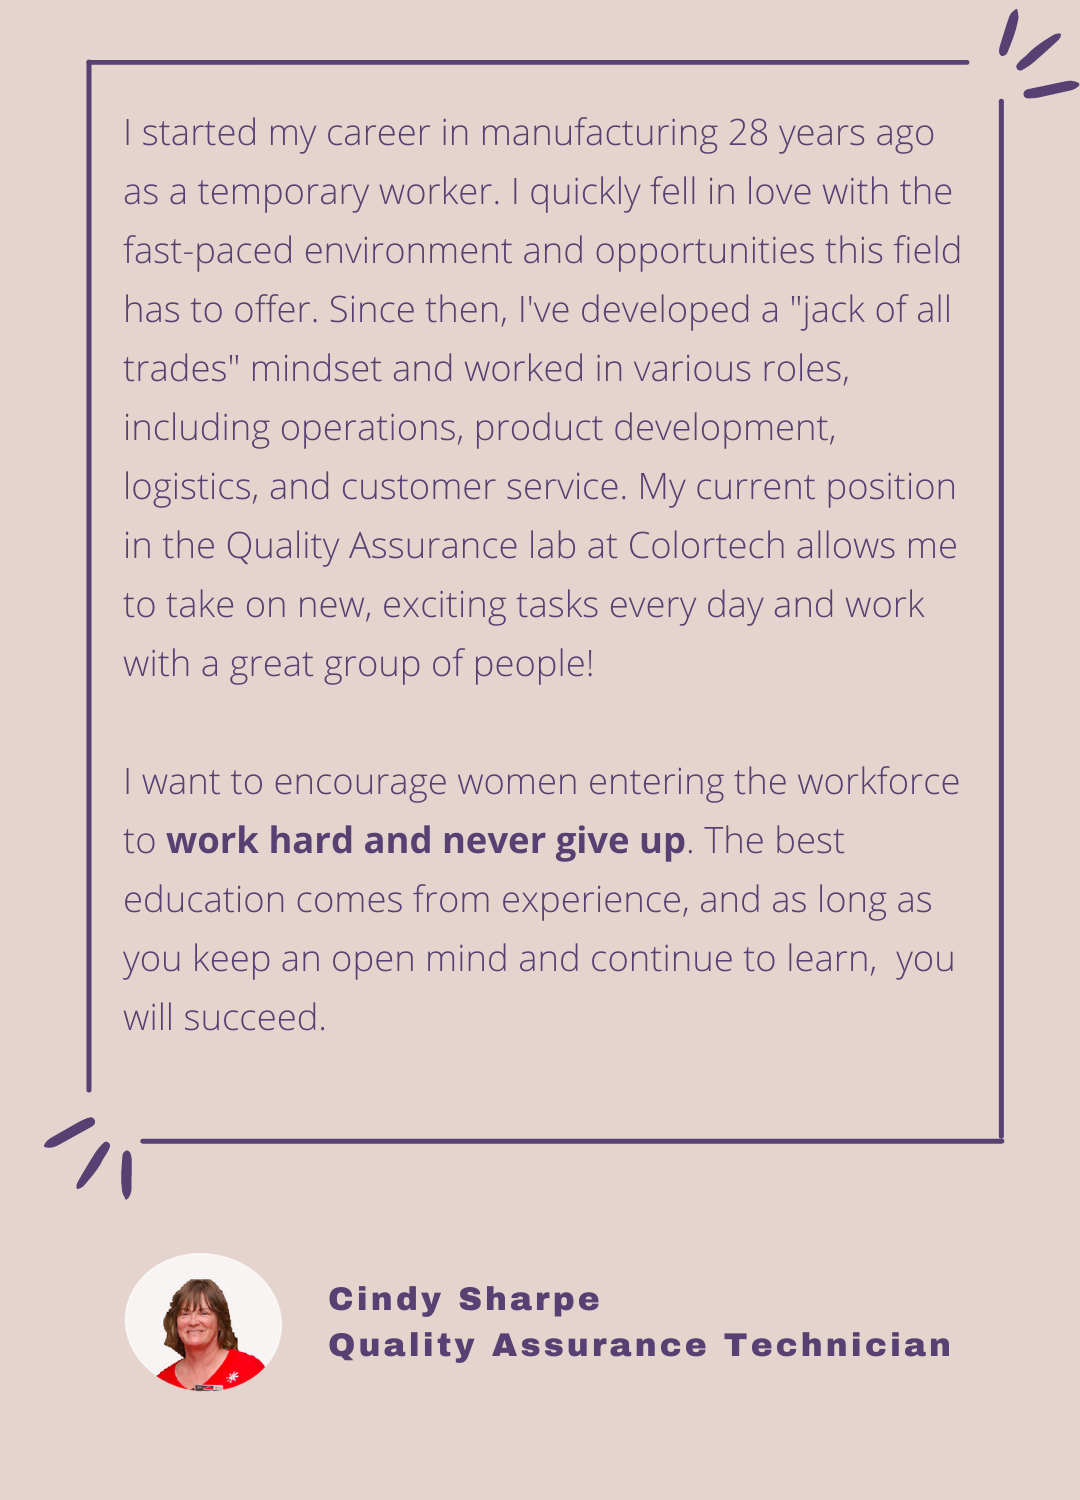 Quality Assurance Technician, Cindy Sharpe quickly fell in love with the fast-paced environment and opportunities when her manufacturing career started 28 years ago. I wants to encourage women entering the workforce to work hard and never give up.